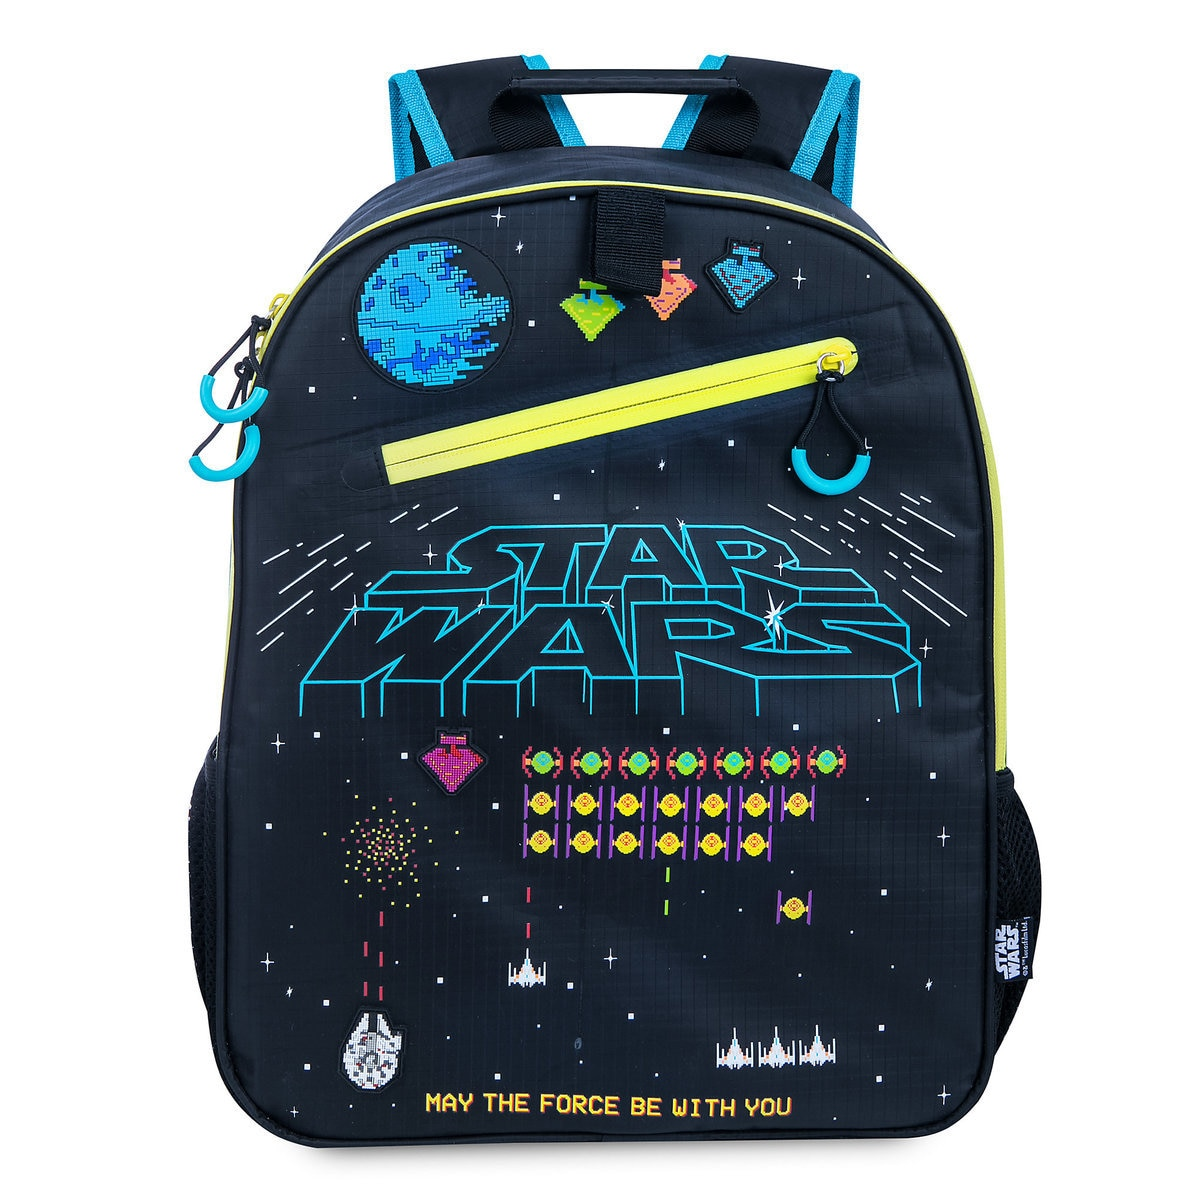 ac1d9e0b306 Product Image of Star Wars Backpack for Kids - Personalizable   1